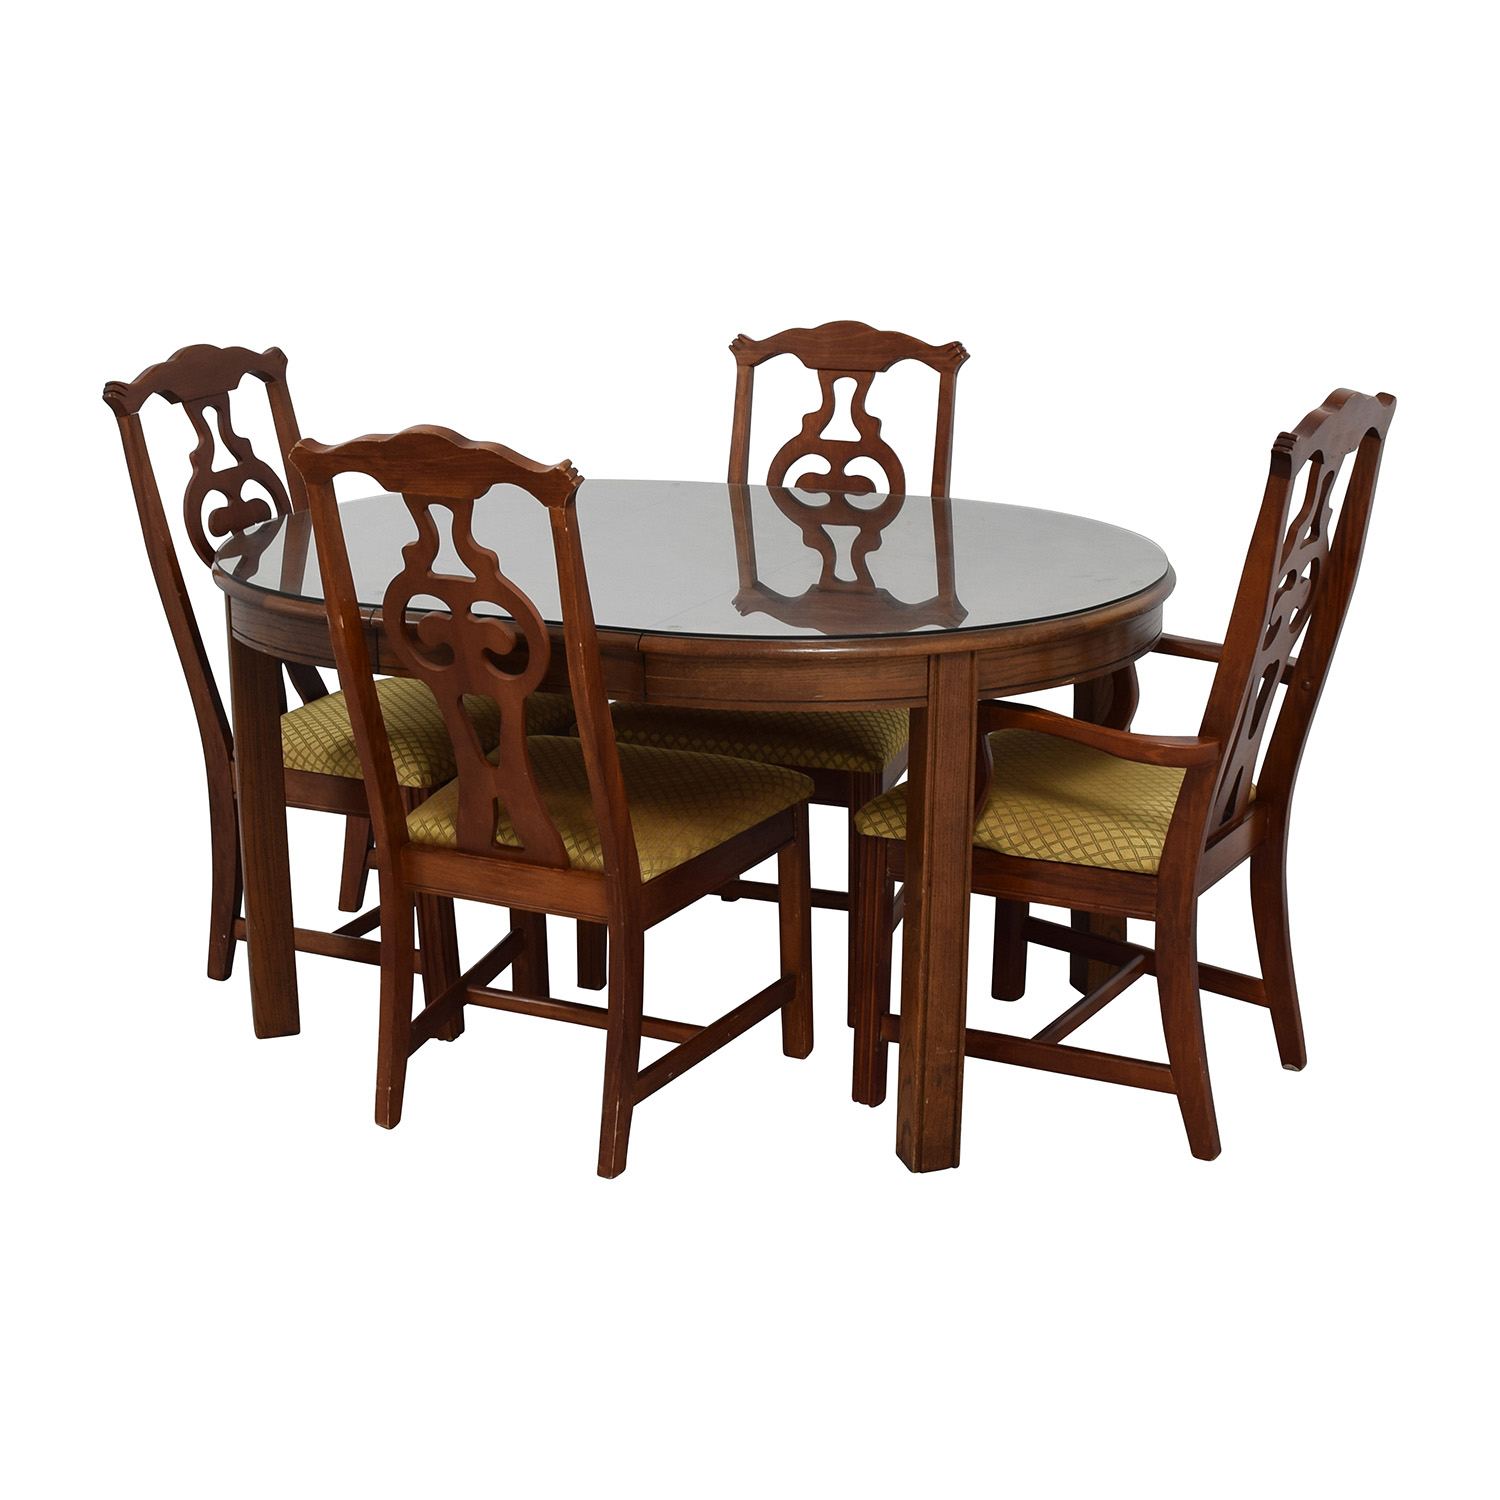 Hagerty Hagerty Wooden Dining Set used